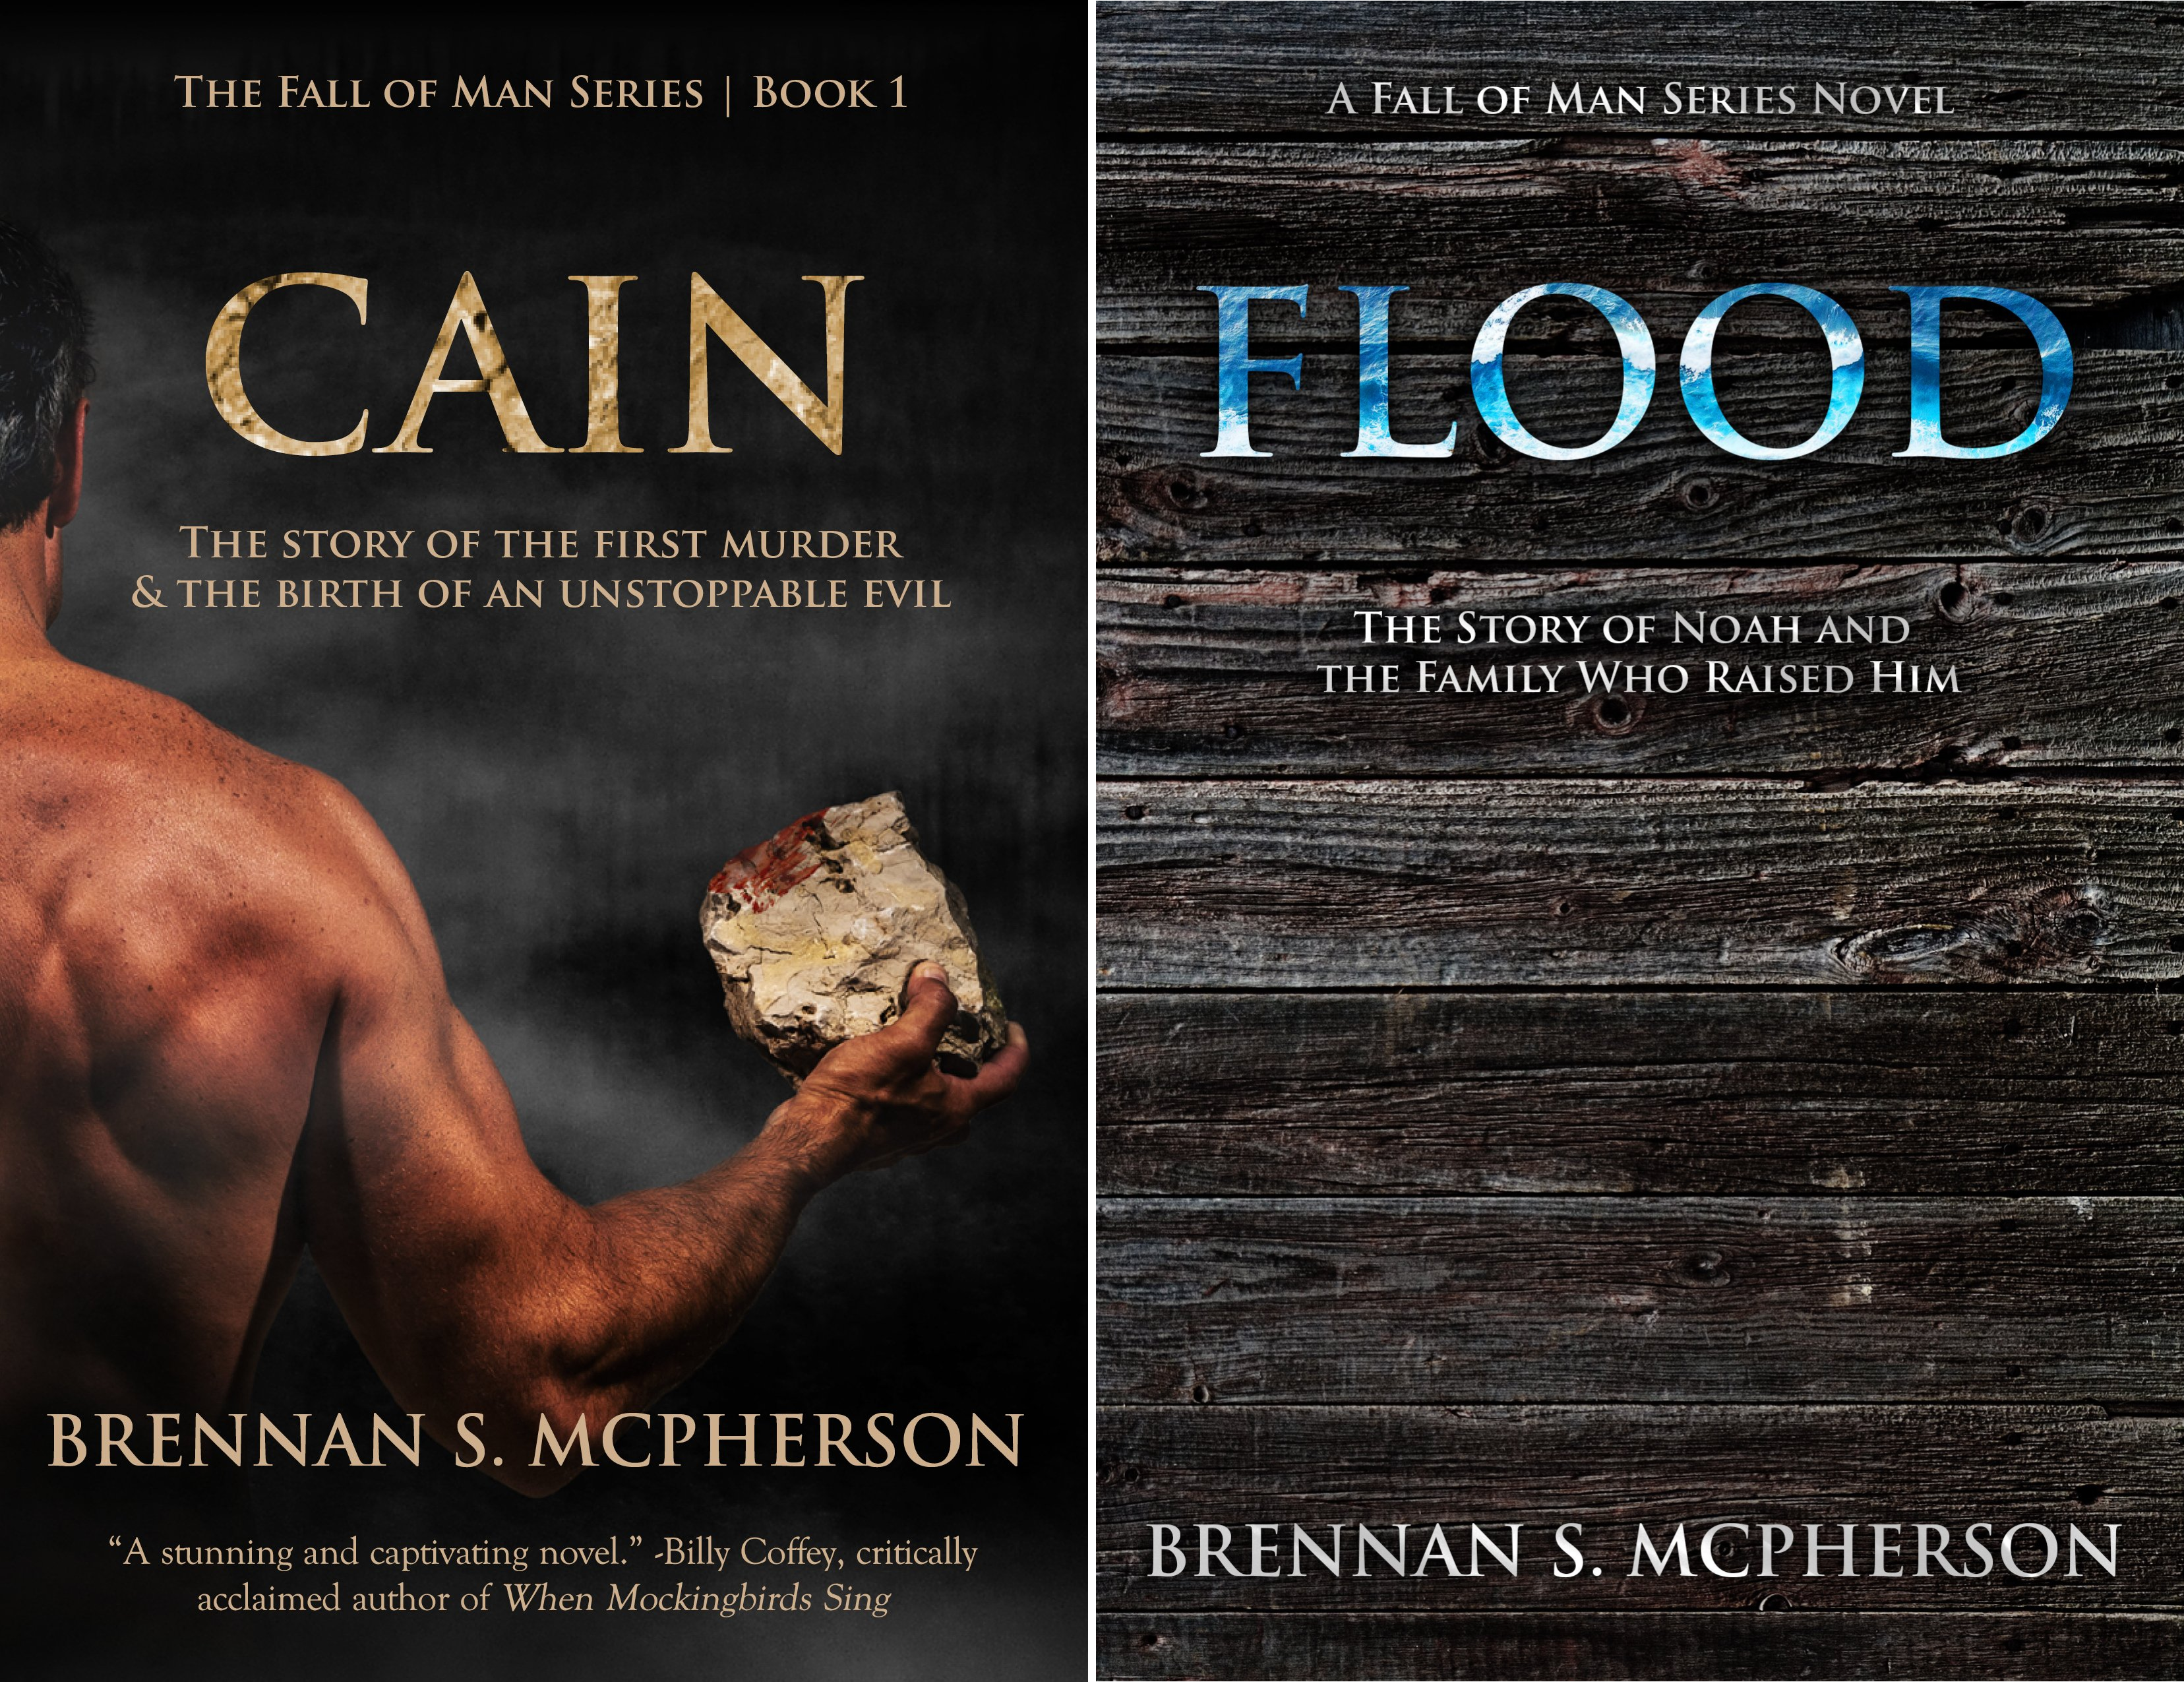 The Fall of Man Series (2 Book Series)